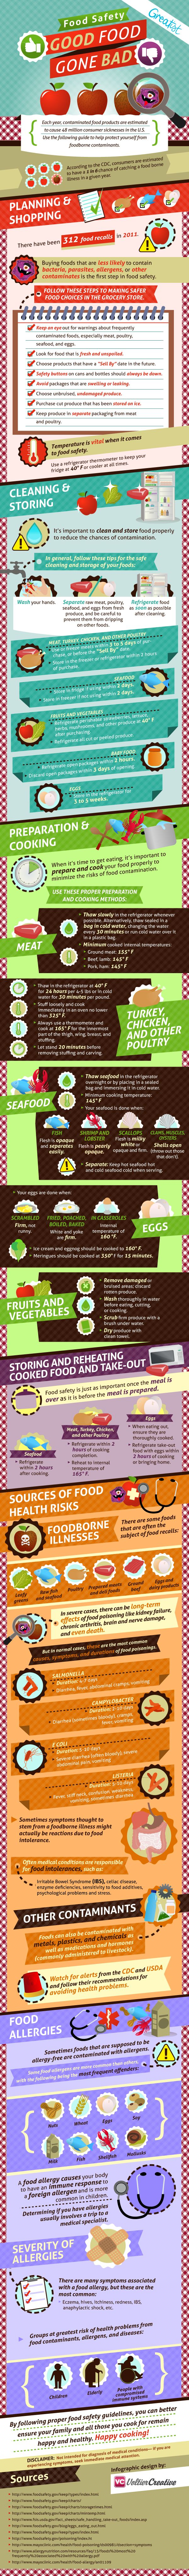 Food Safety... All you need to know from keeping yourself from making you and your family sick! Foodborne illnesses aren't fun...